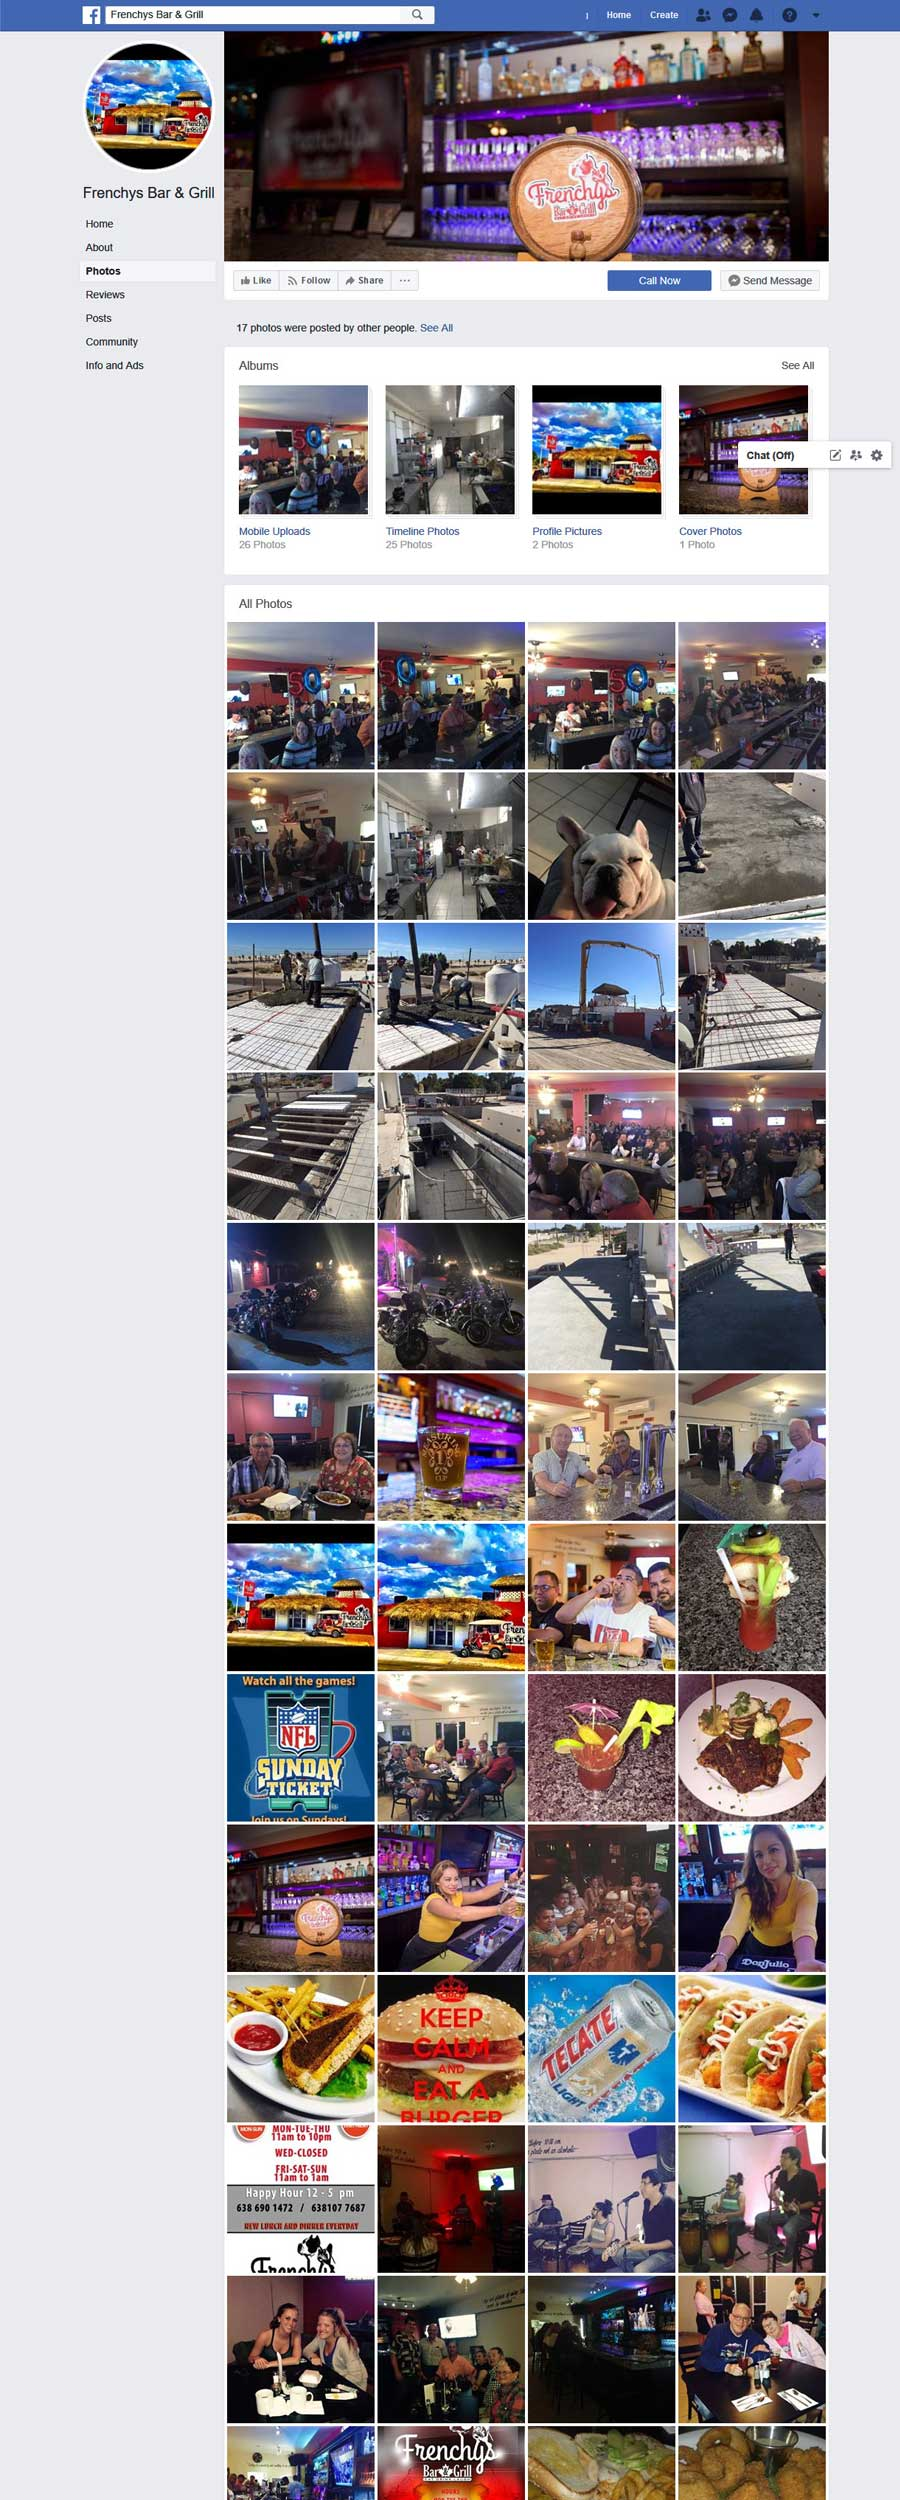 Restaurant Frenchy's Bar and Grill in Rocky Point Mexico (Puerto Penasco). Click the Picture to Visit  Frenchy's Bar and Grill Facebook Page Site!